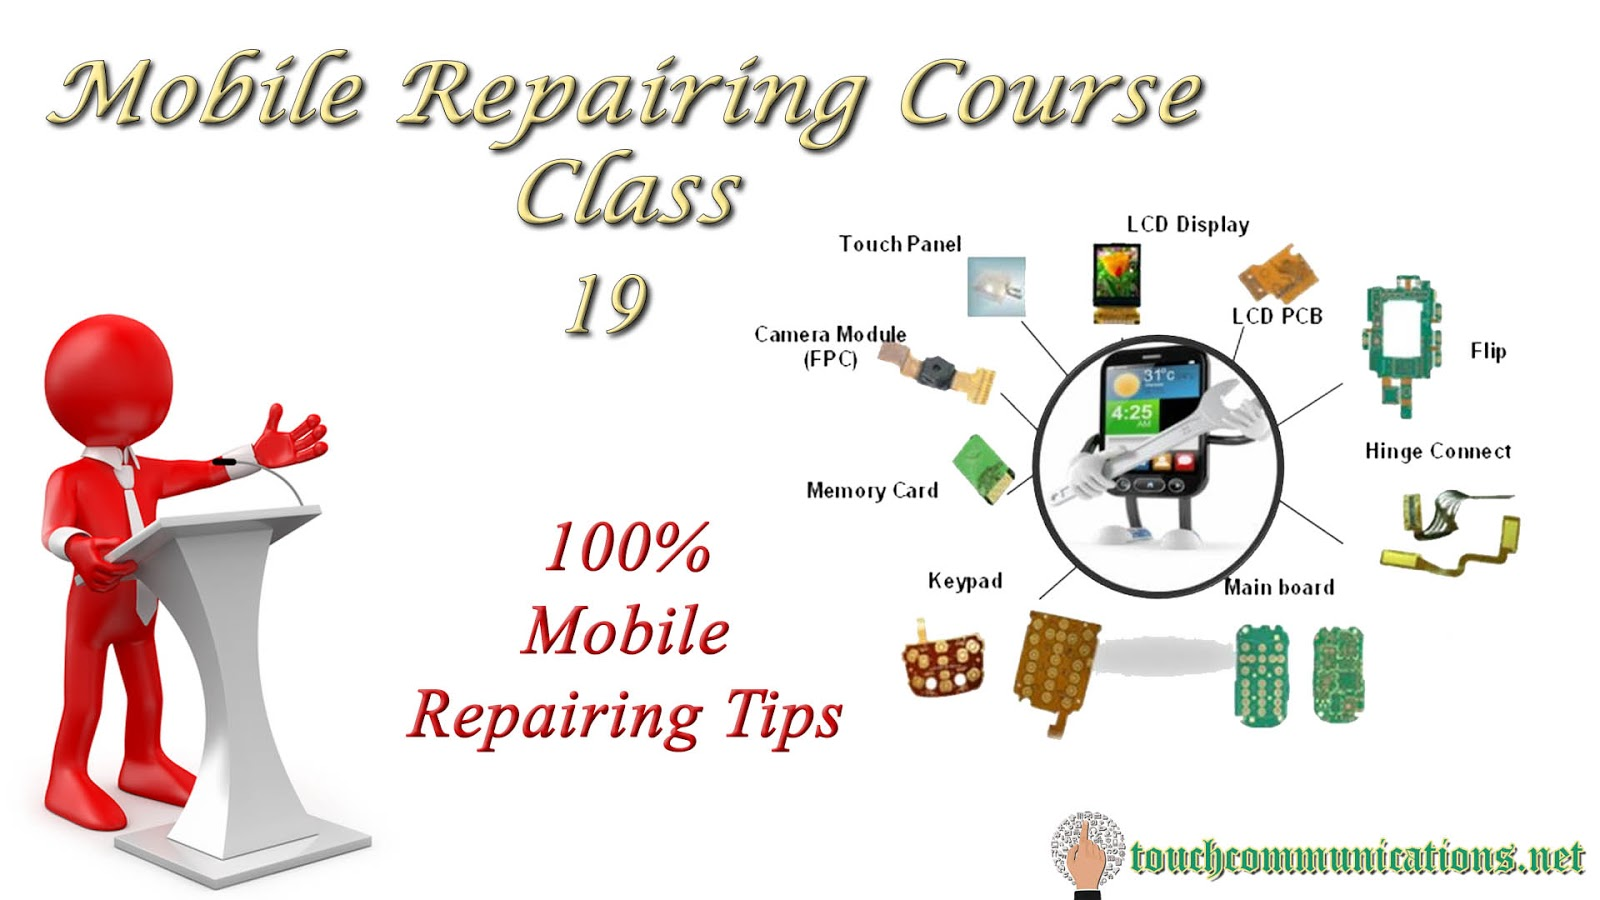 Mobile Repairing Course Online Free Class 19 Mobile